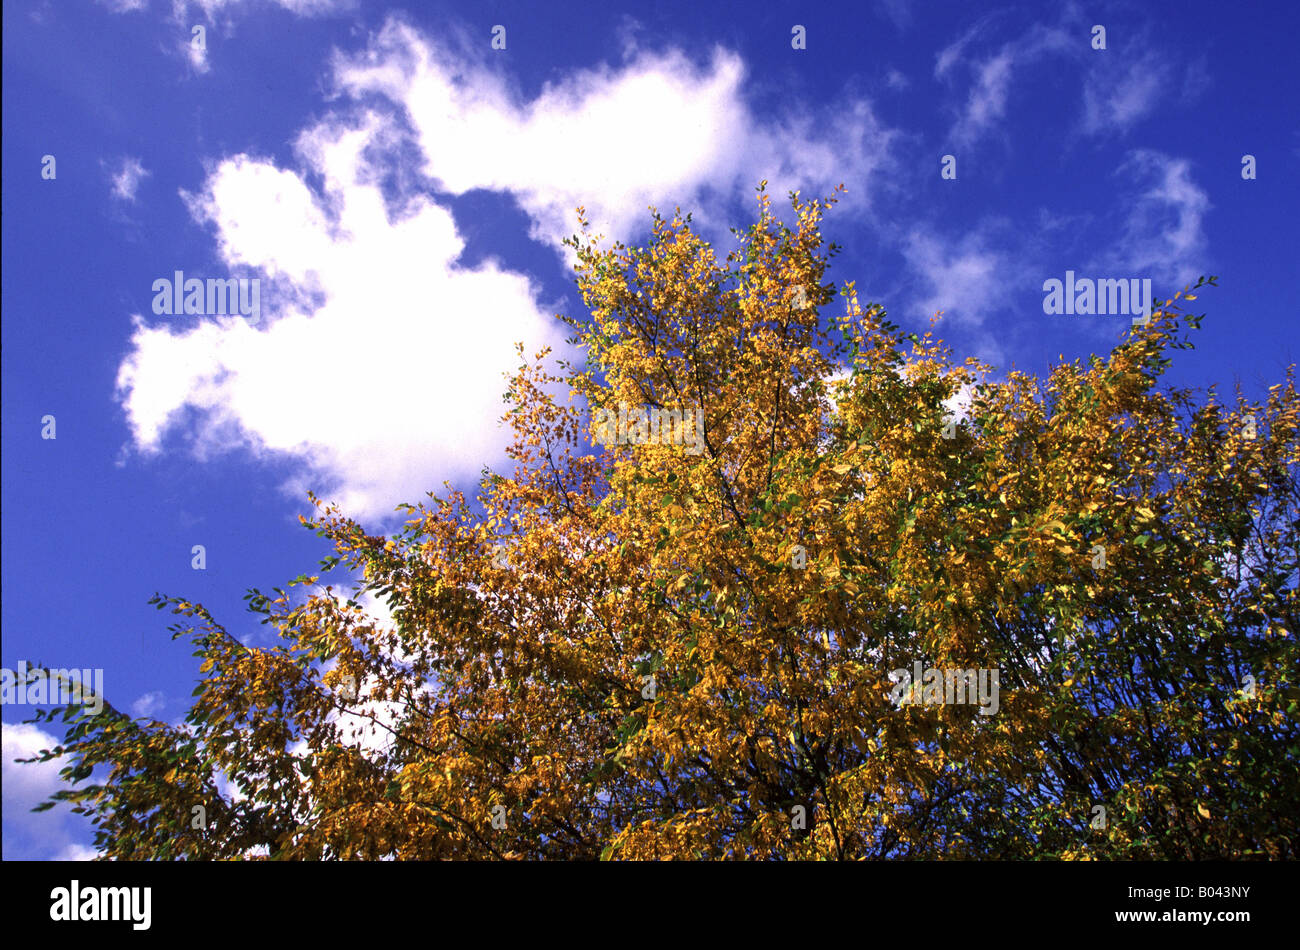 Weissbuche Hainbuche carpinus betulus european hornbeam common hornbeam charme commun carpe blanco Hainbuche im Stock Photo